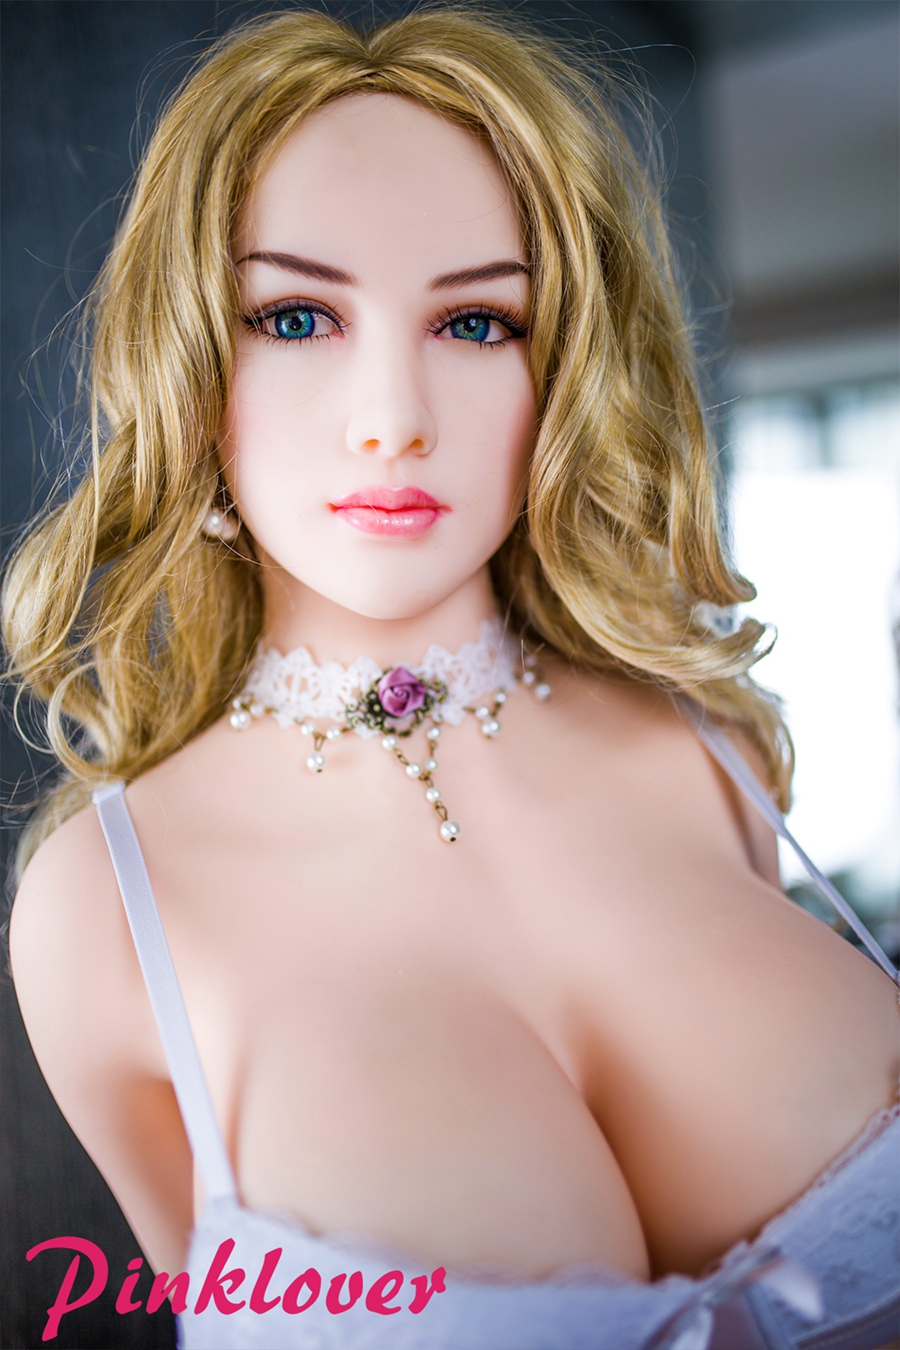 Pinklover 163cm Customized Life Size realistic silicone TPE Female Japanese Sex love Doll for men my size 49 163 презервативы уменьшенного размера